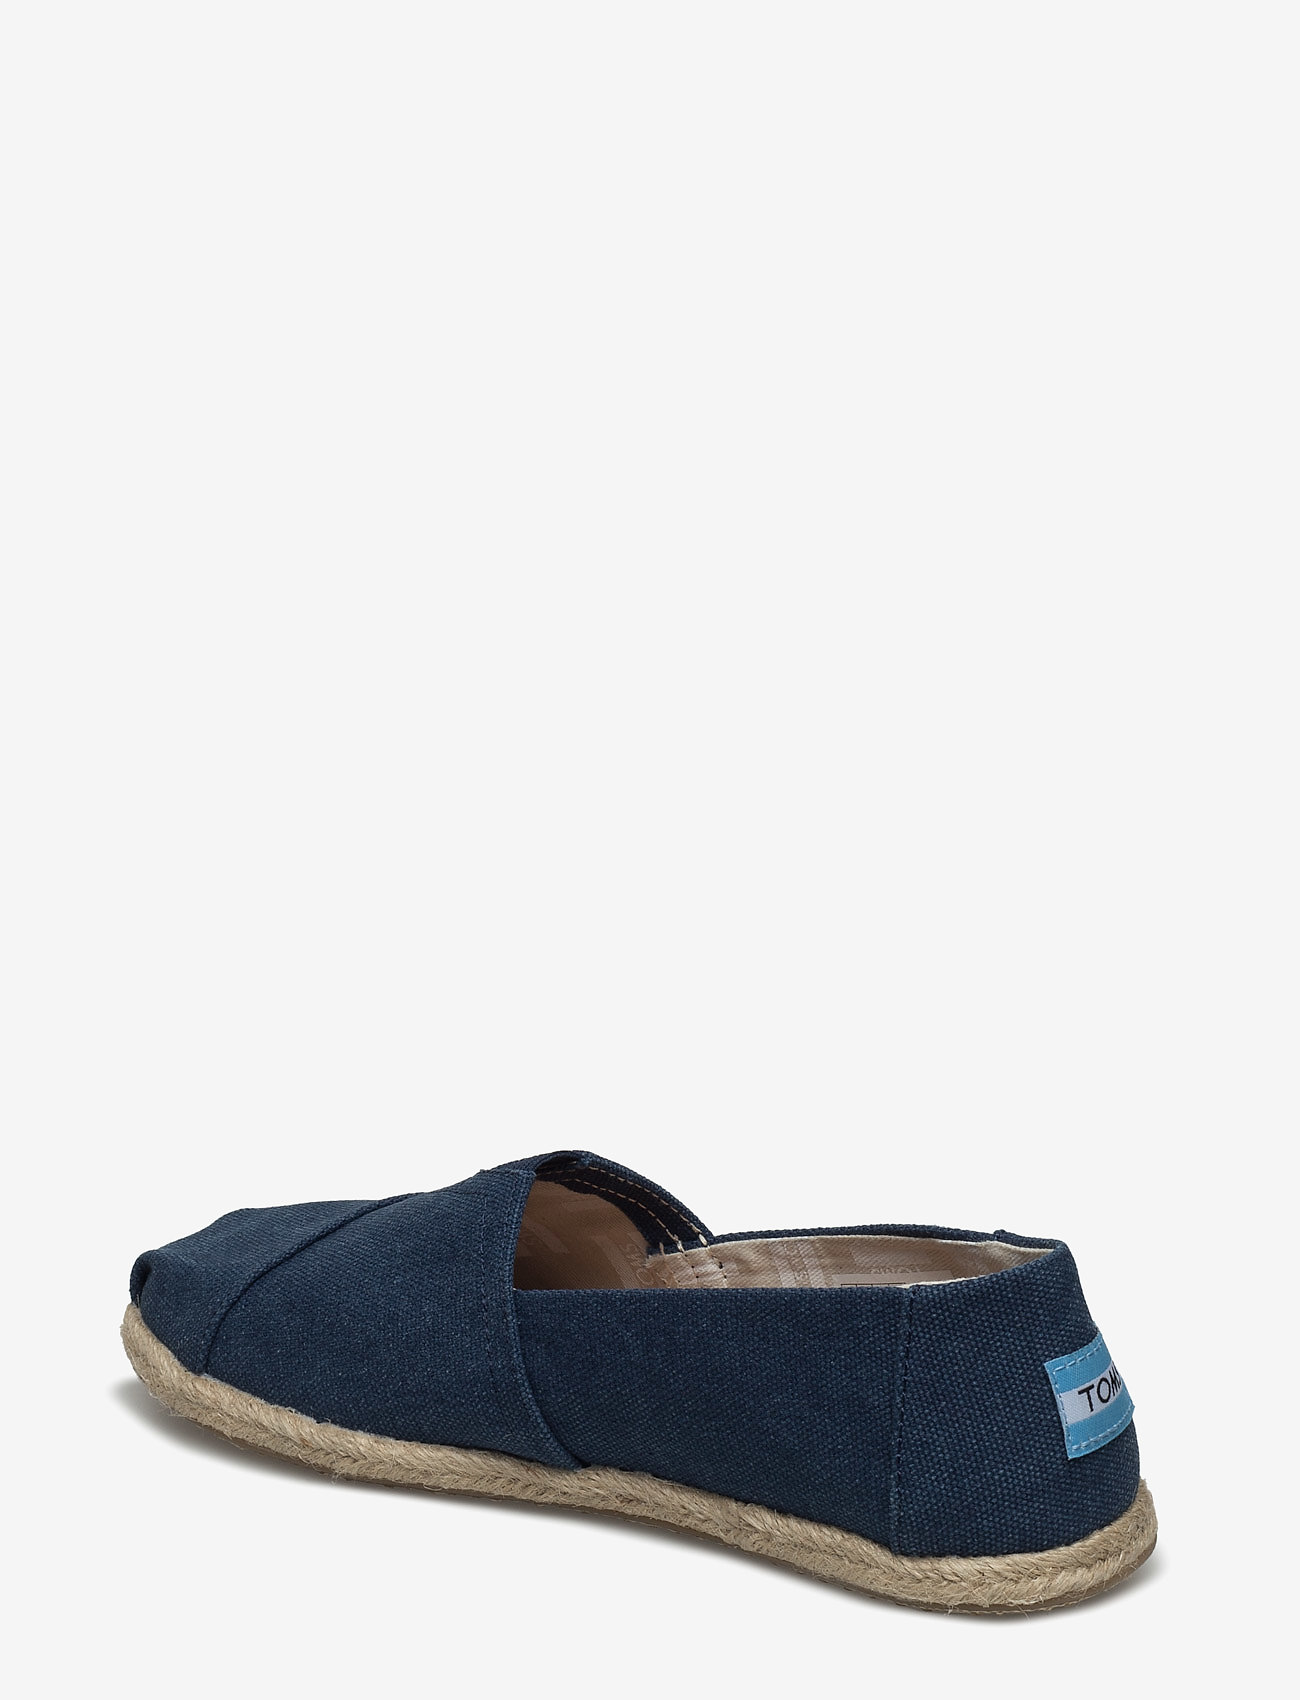 Navy Washed Canvas (Navy Washed Canvas Rope S) - TOMS